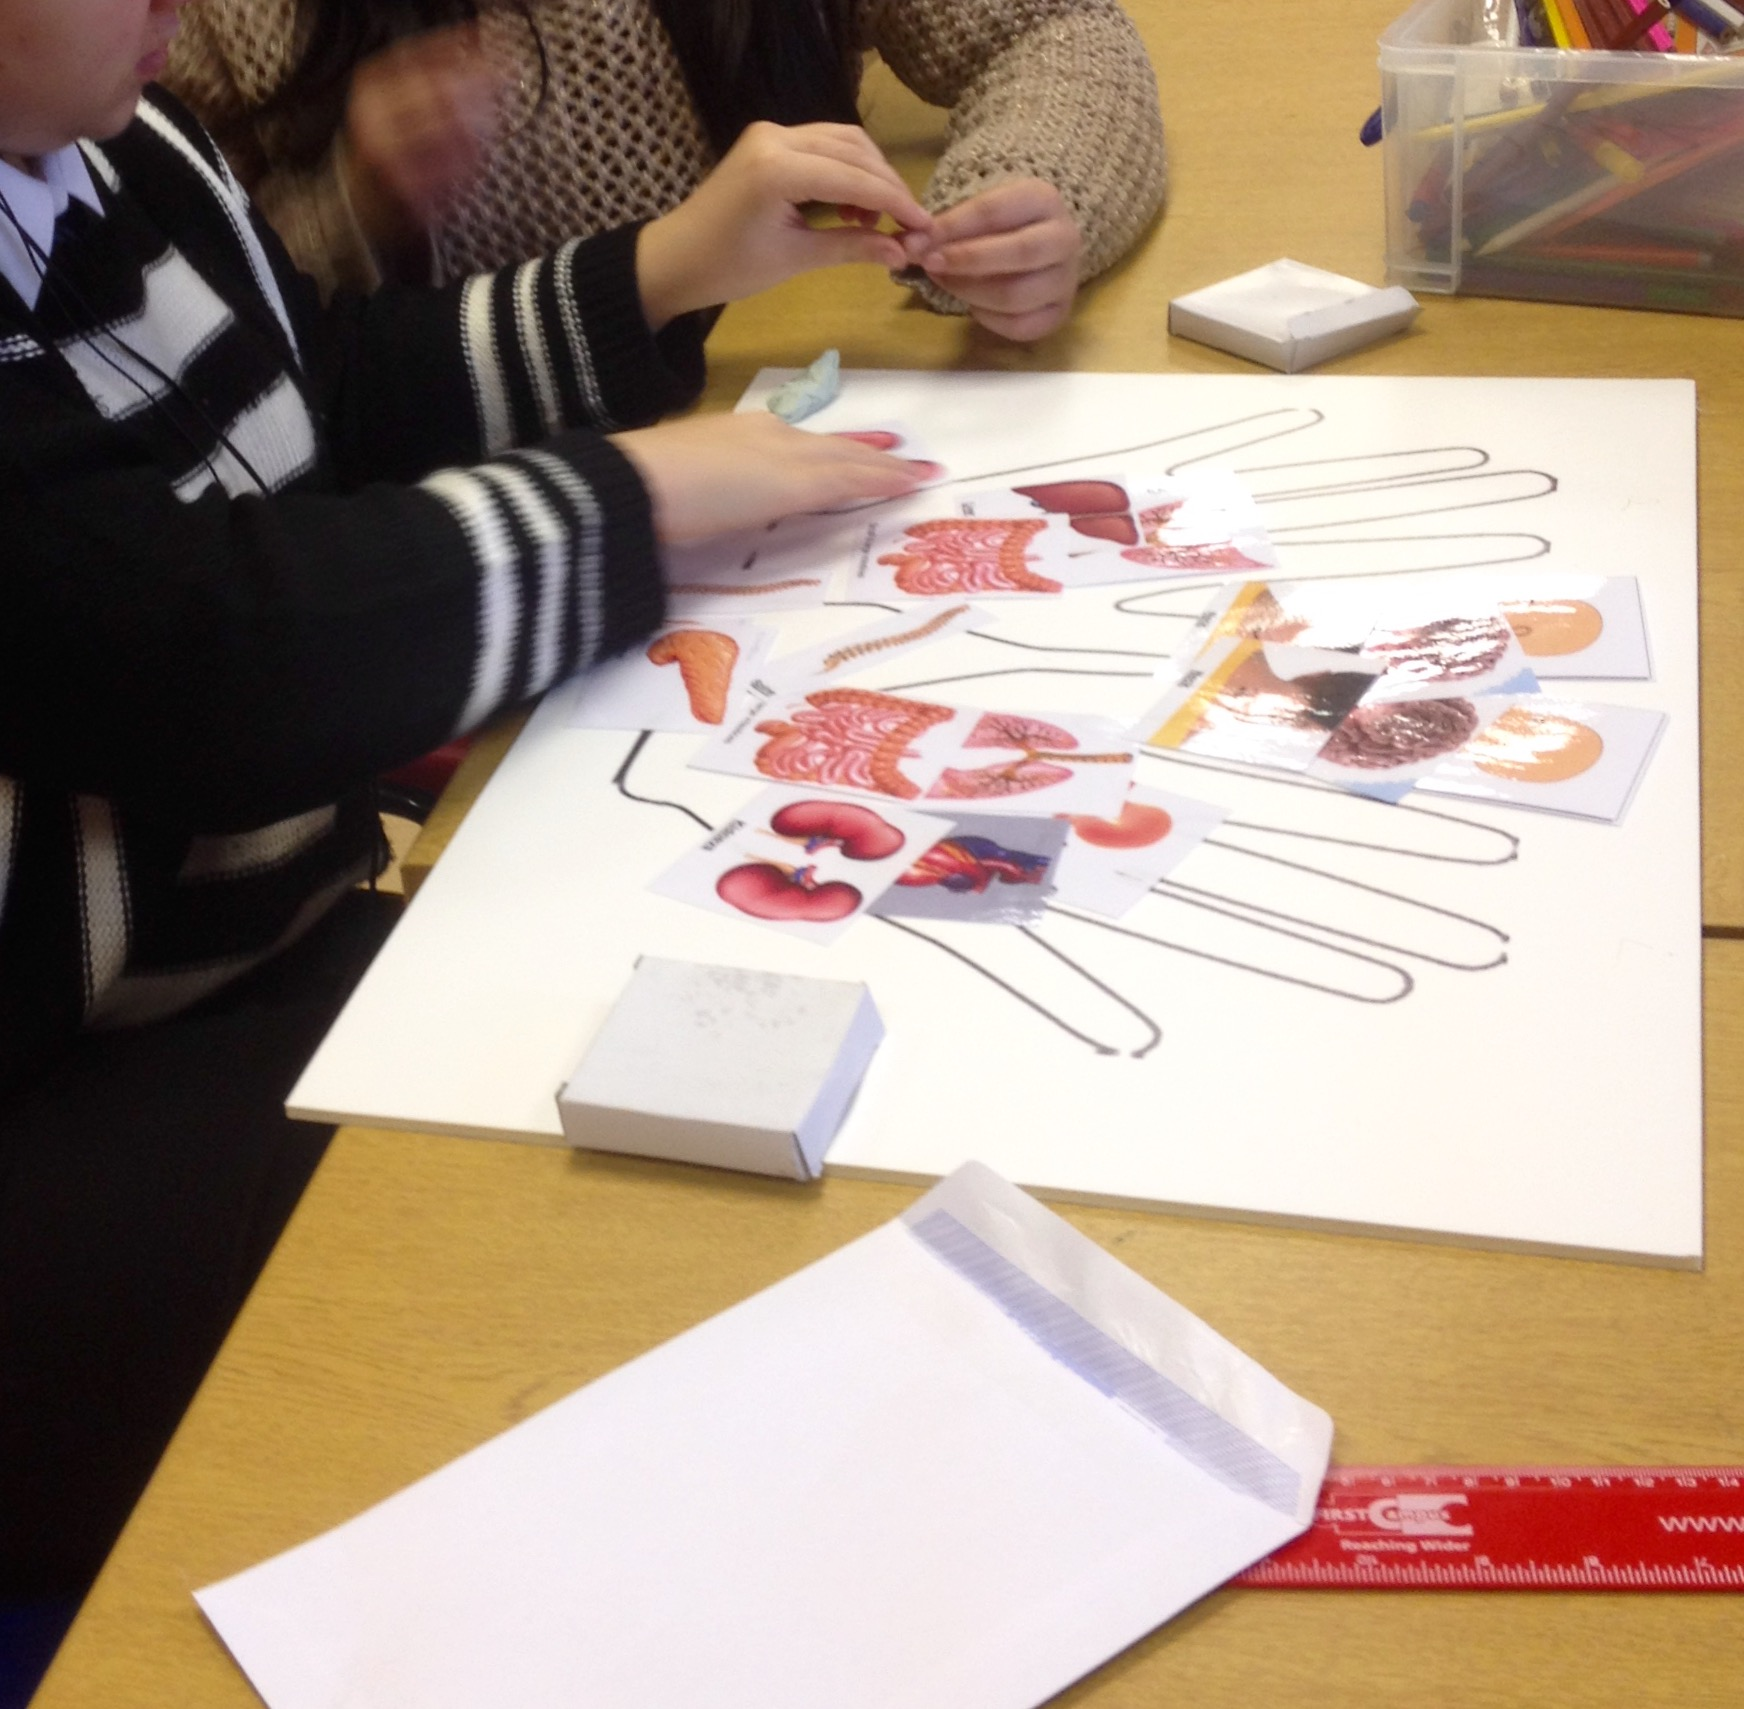 Complementary Healthcare After School Club